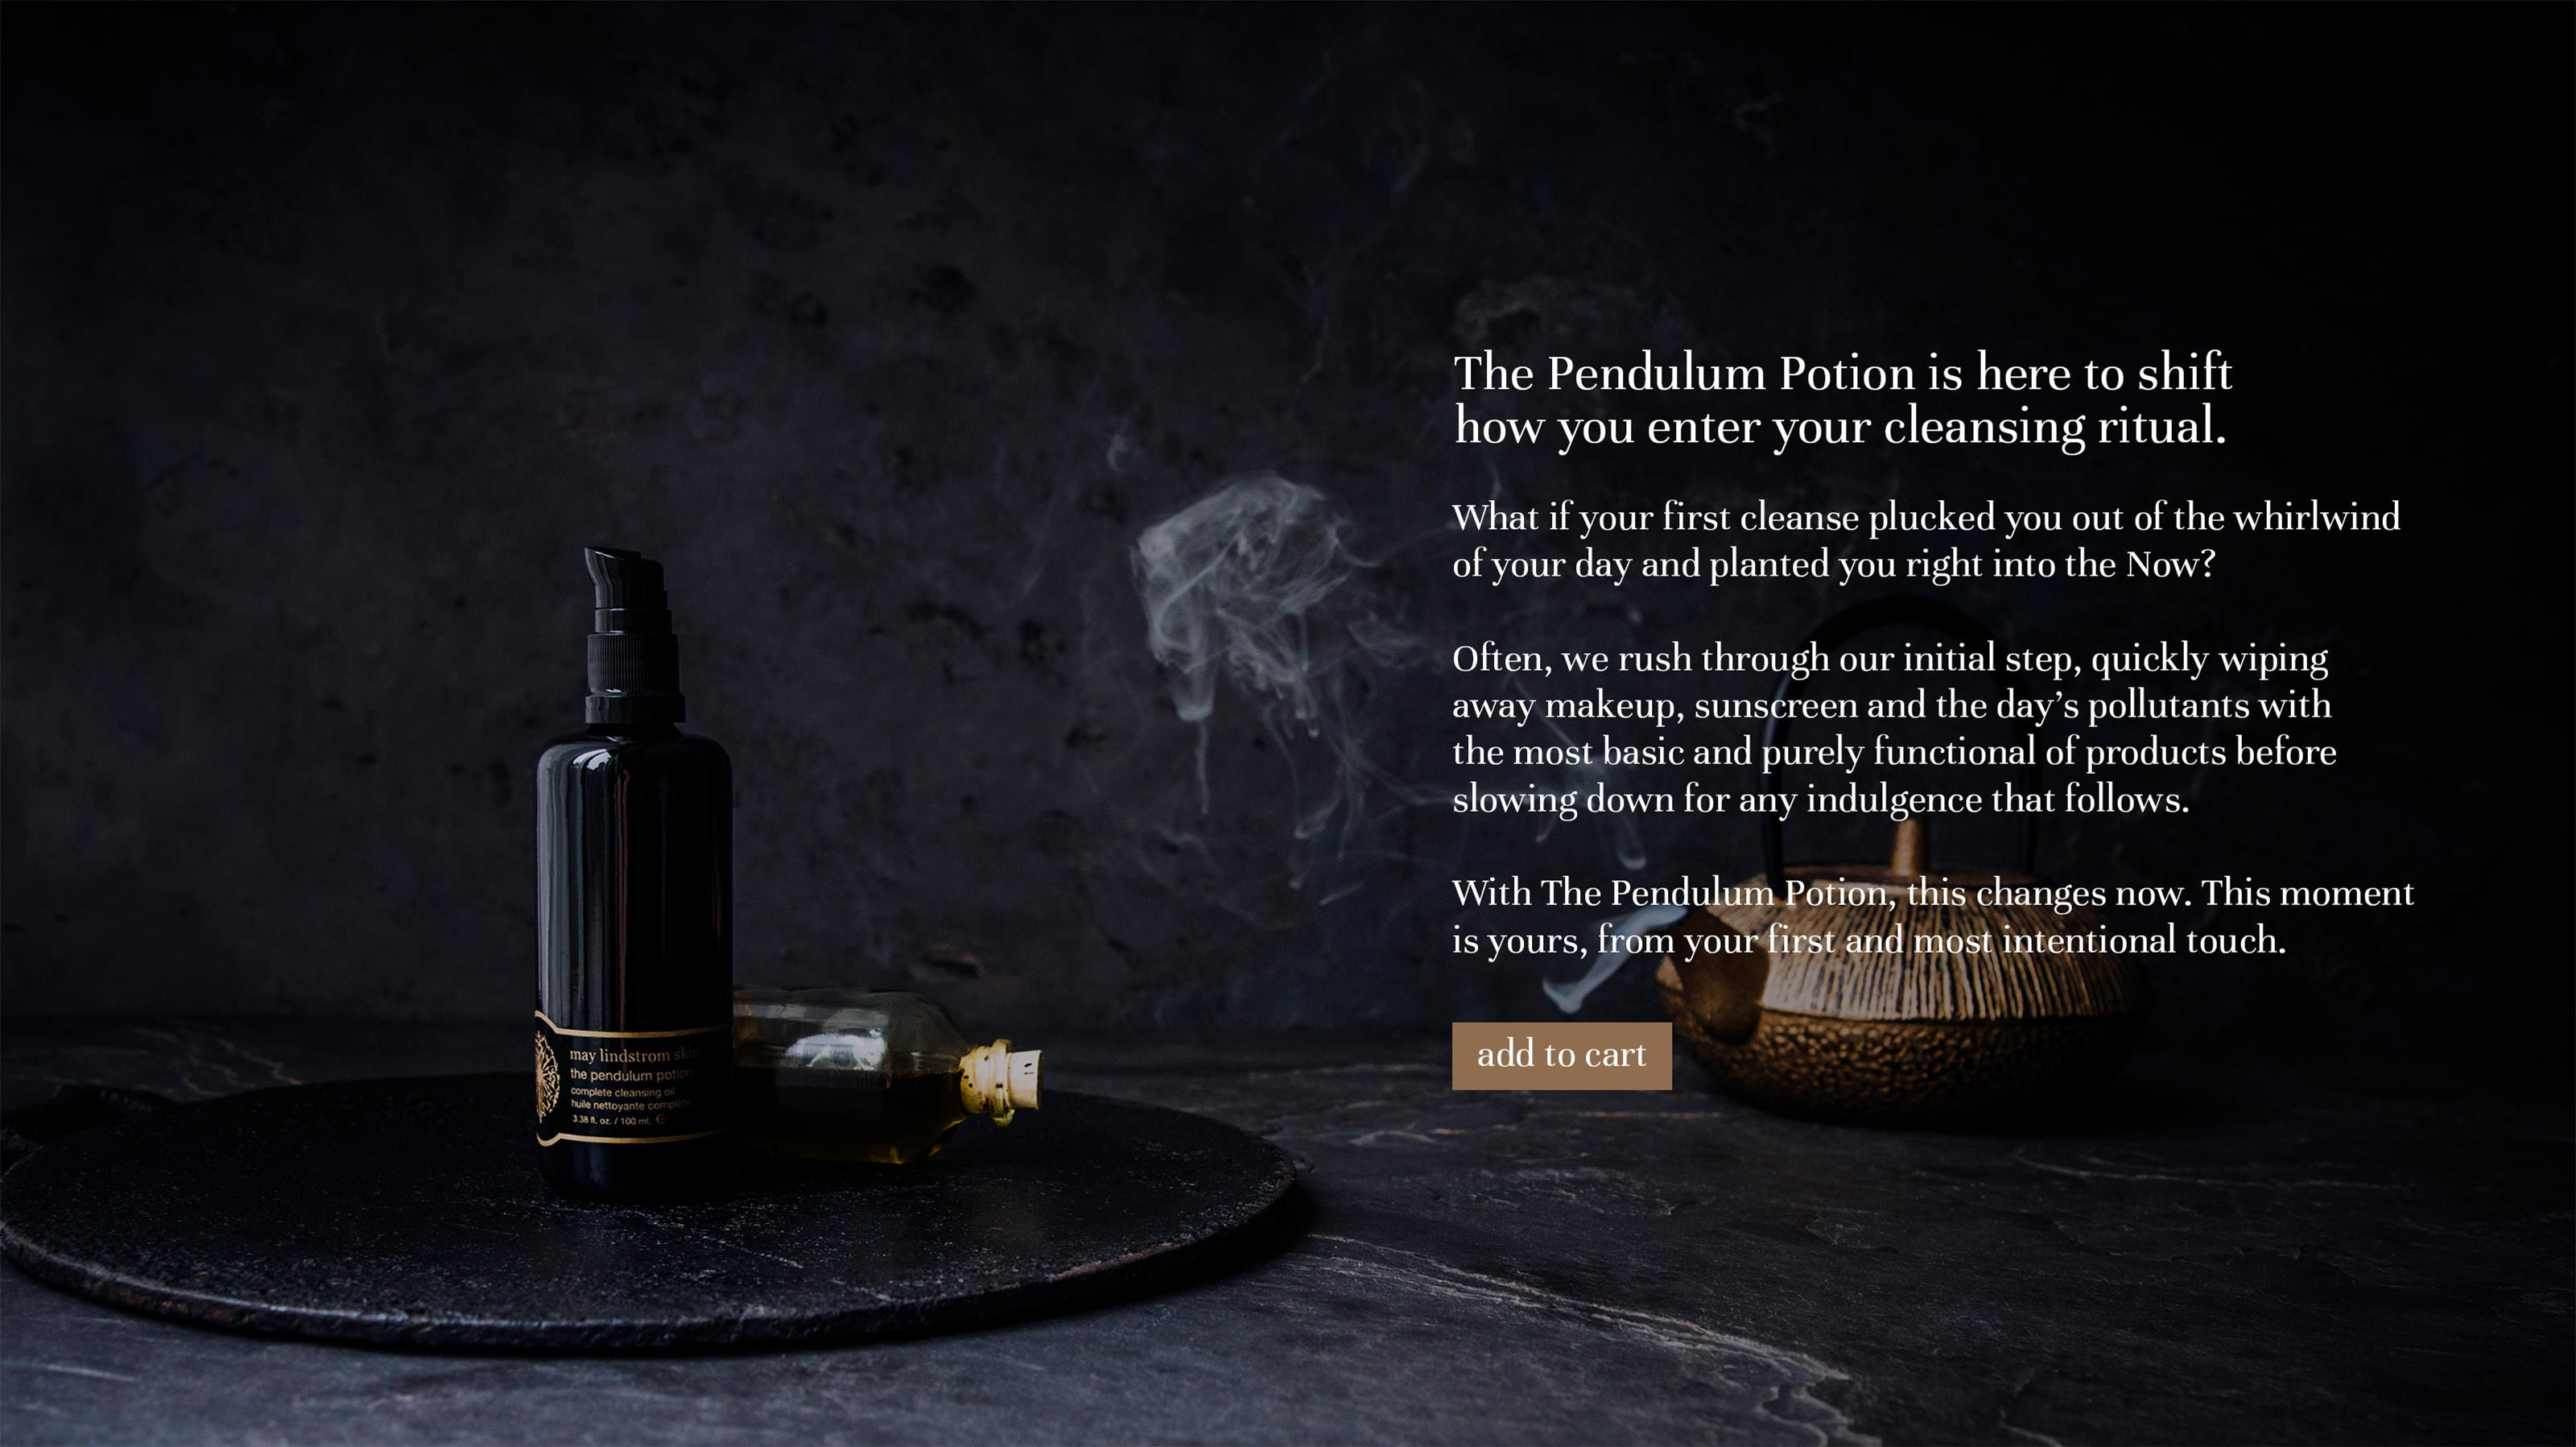 The pendulum potion complete cleansing oil $80 – the result; Revel in a complexion that is nourished, restored and thoroughly fed. The ritual; Shake bottle and suspend directly upside down, dropping a small pool into palms. Press into dry skin, then wet hands and gently massage. Follow by cocooning a warm, steamy face towel over face and neck, gently sweeping upwards. Hold, rinse and repeat until skin is soft and cleansed.